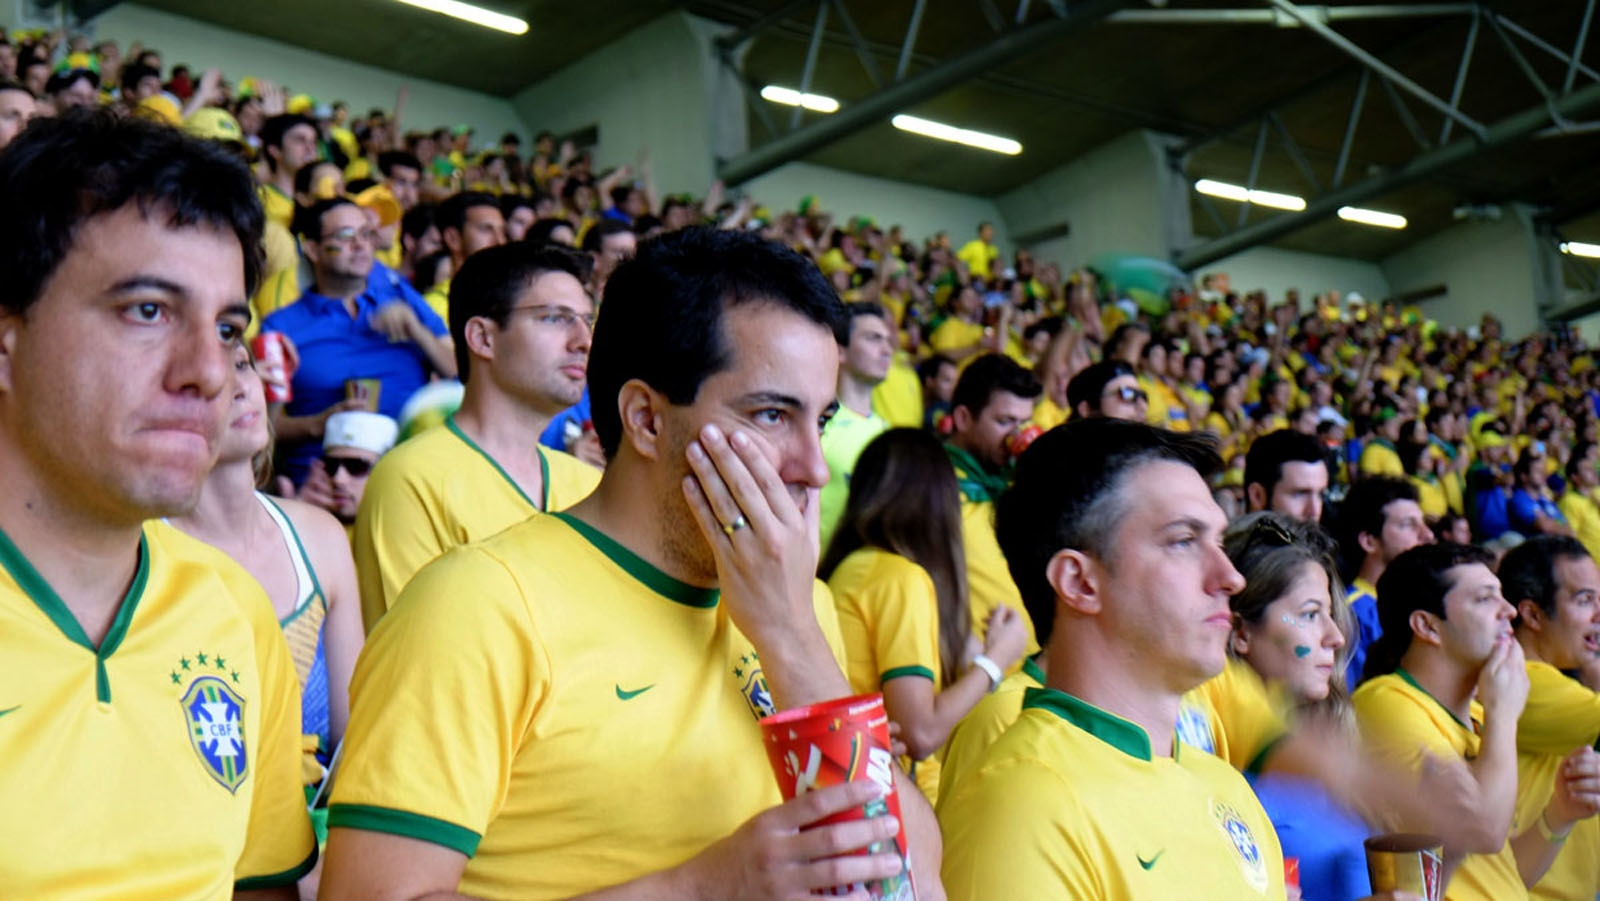 Brazil's loss broke their 62-match home unbeaten streak in competitive matches going back to 1975, when they lost 1–3 to Peru in that year's Copa América.